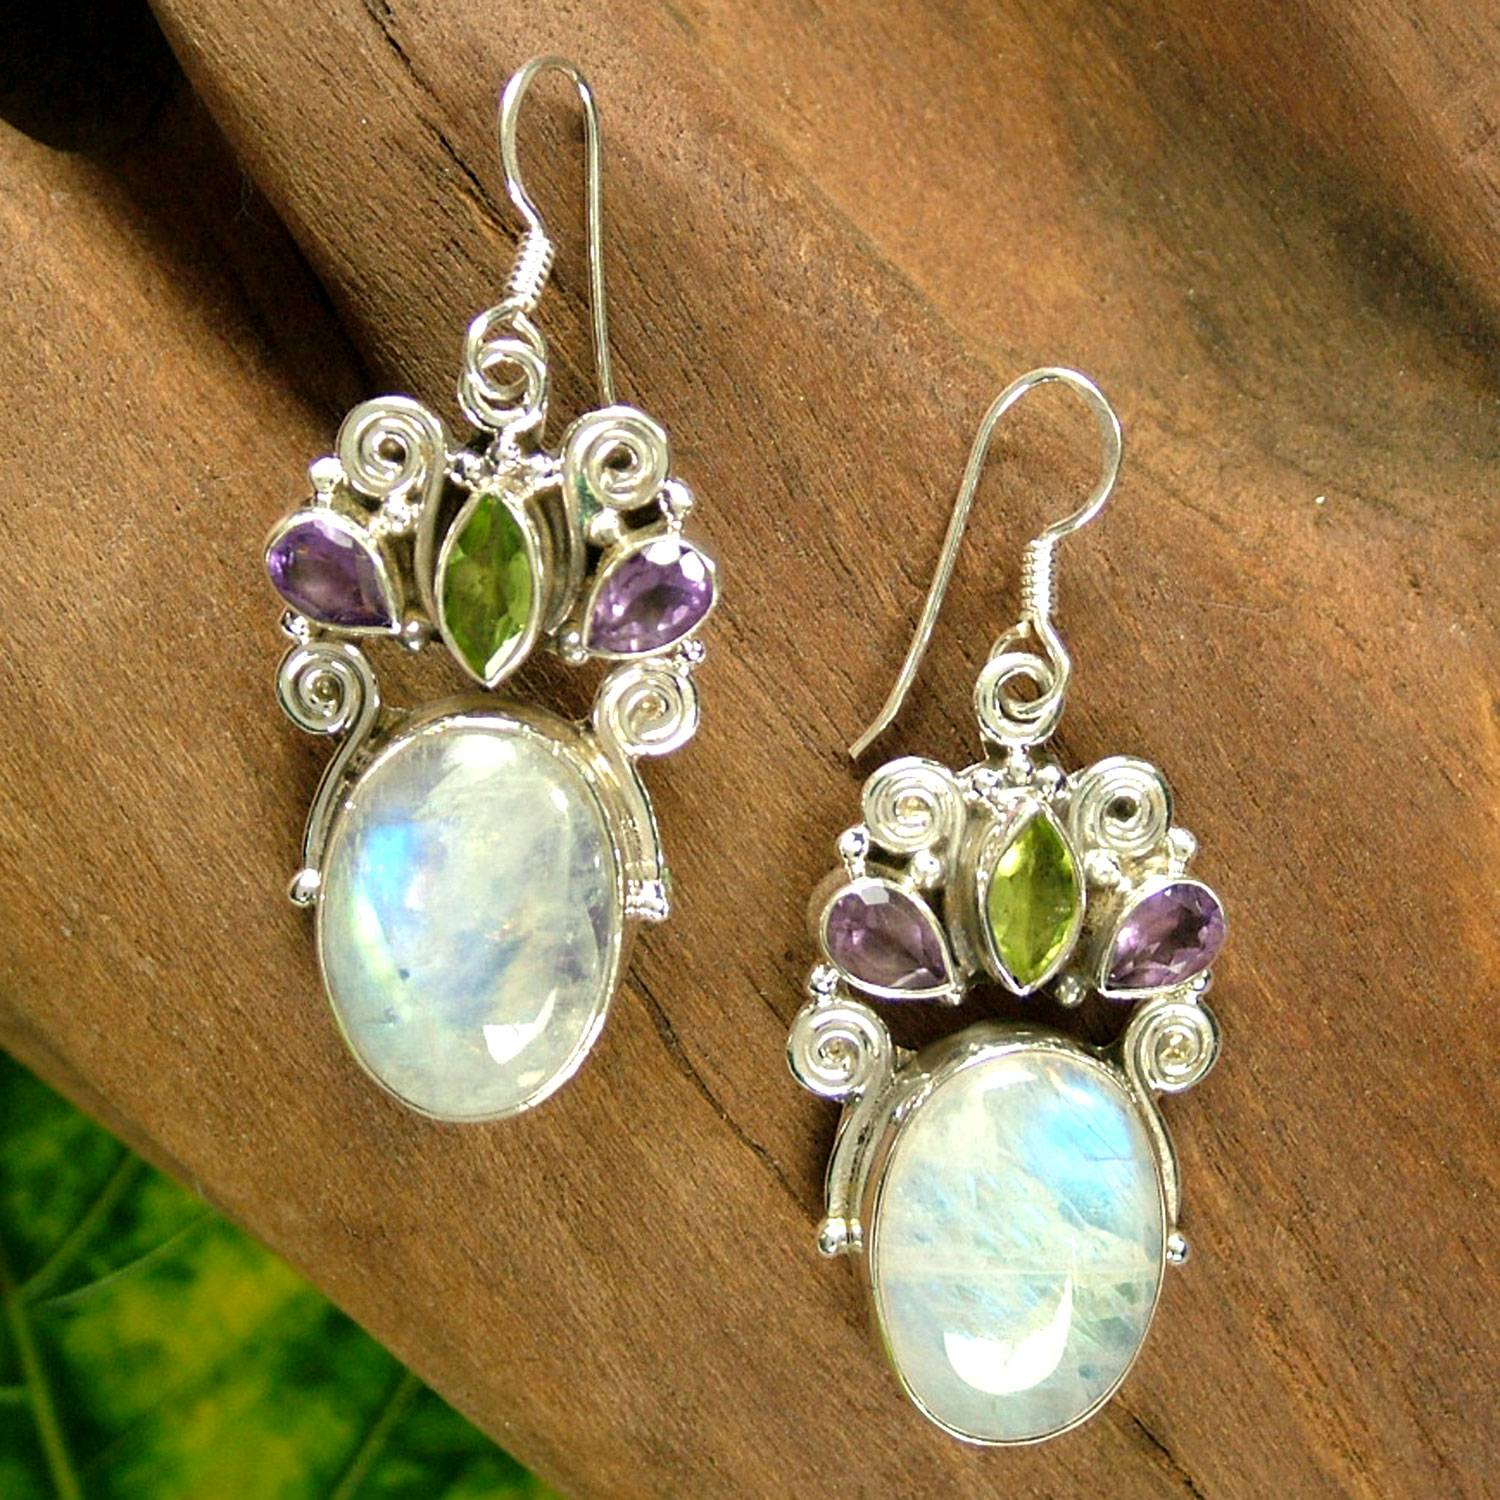 Unique Rainbow Moonstone Earrings From India Moon Drops